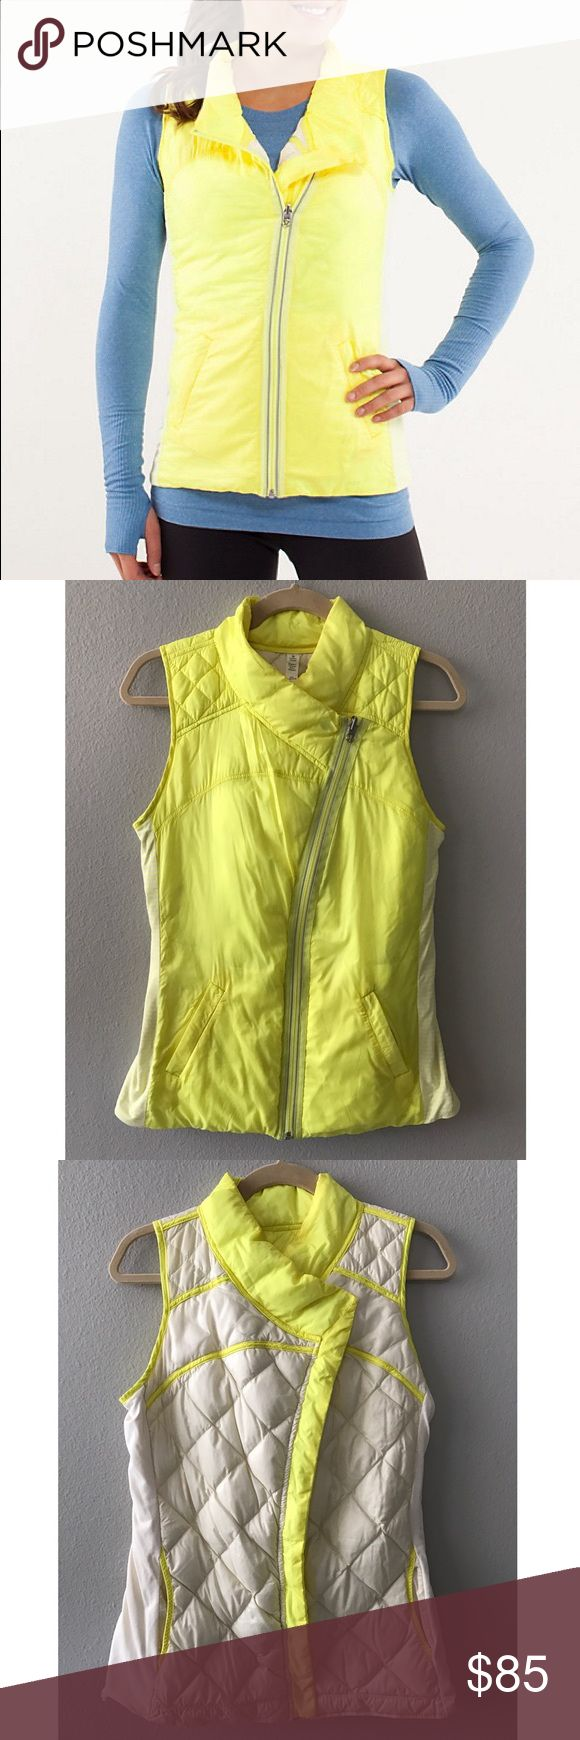 Lululemon what the fluff reversible vest Like new with very little wear. A little hint of makeup on inside collar that can be removed (see last image) otherwise in like new condition. Really warm with goose down but not bulky so it's perfect for laying over another jacket or fleece or under a coat. Great for hiking and running! Side panels are stretchy rulu fabric, makes for a comfy/great fit. Originally worn with half zip - see other listing. lululemon athletica Jackets & Coats Vests